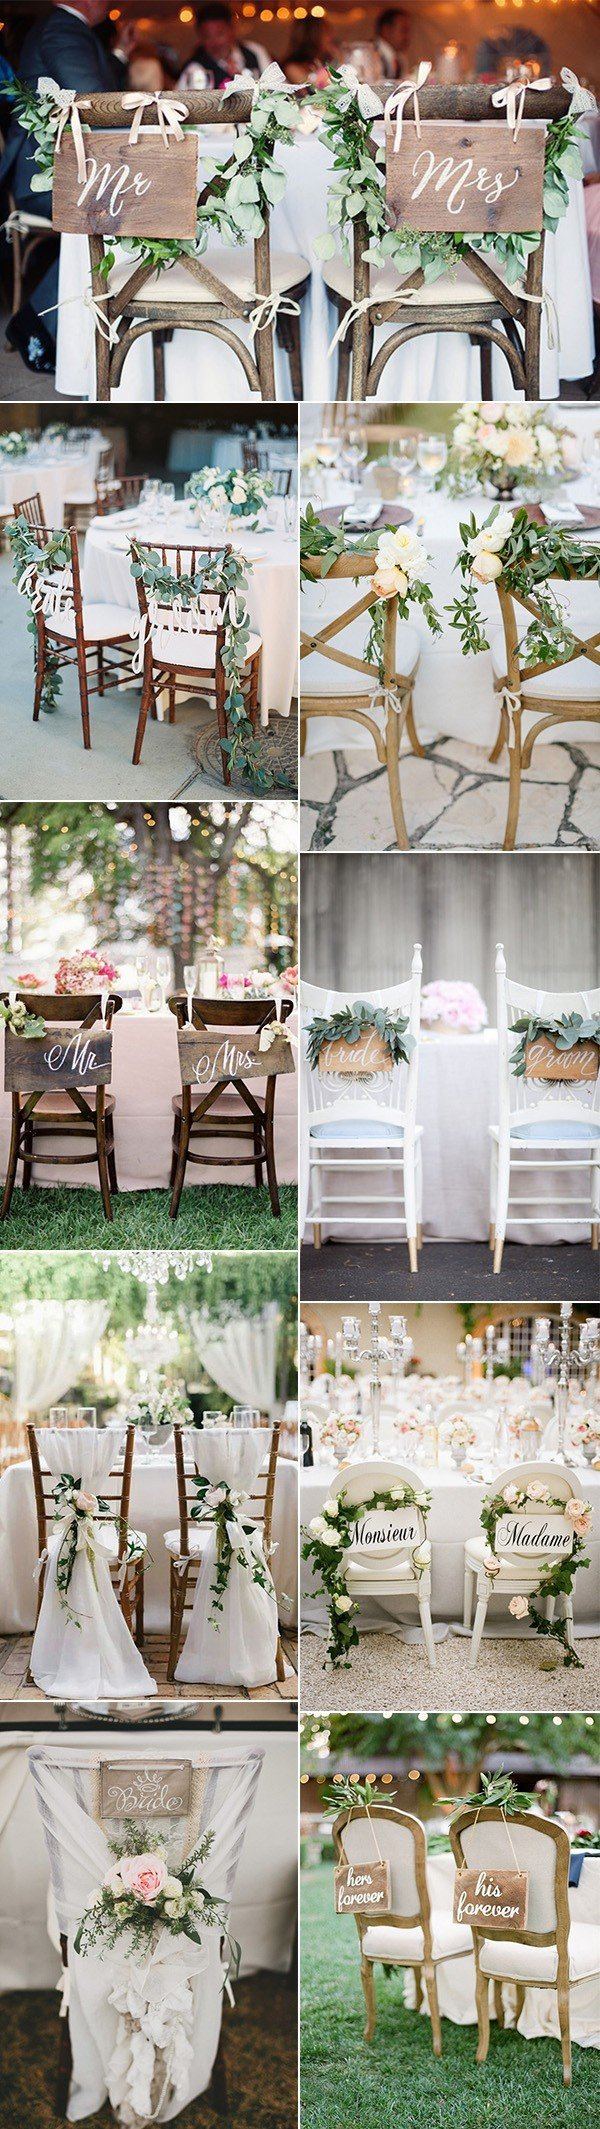 Amazing Bride And Groom Wedding Chair Decoration Ideas